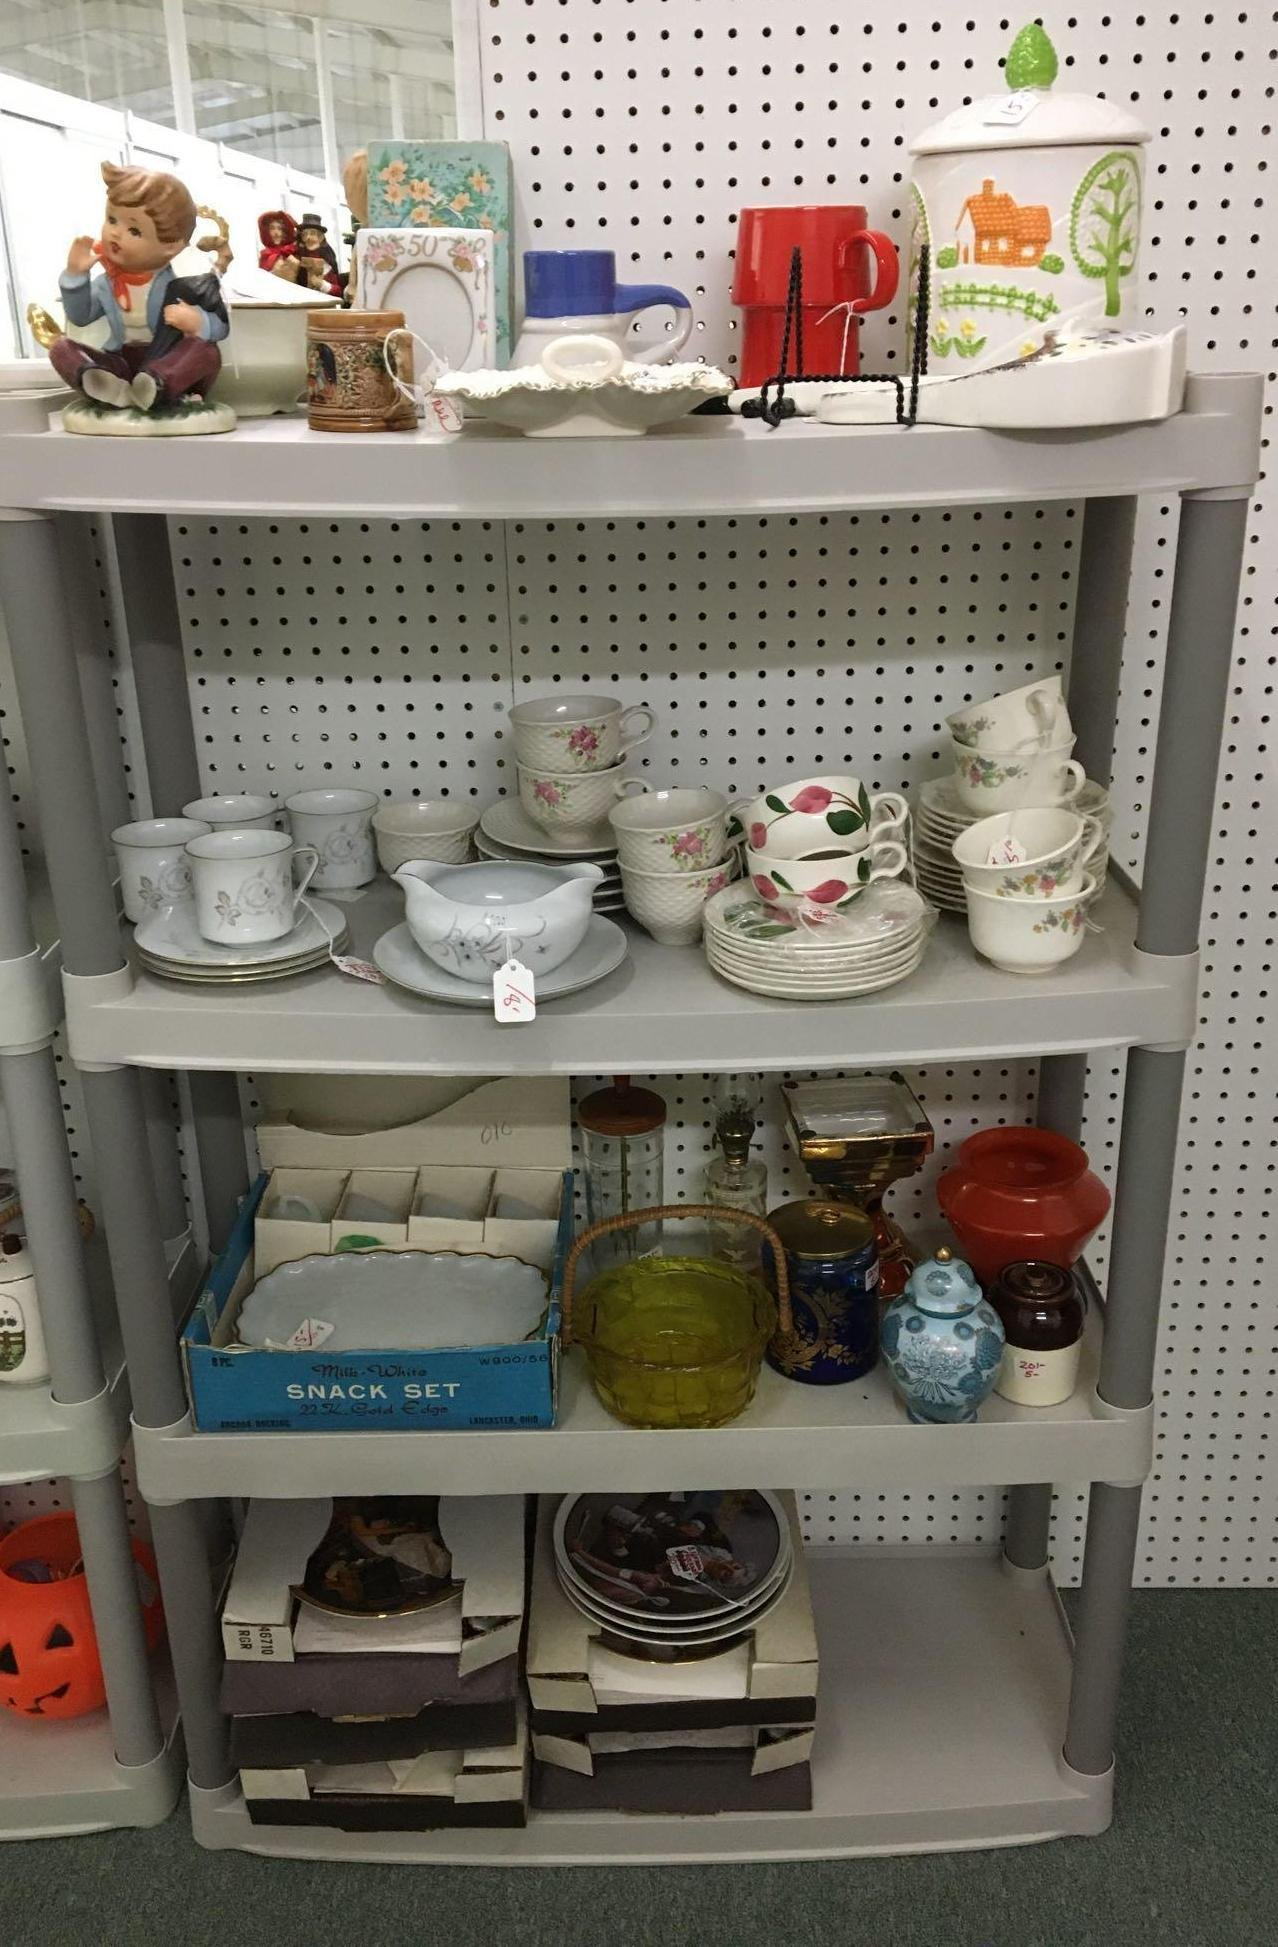 Group of 4 Shelf lots of Antique/Vintage Miscellaneous